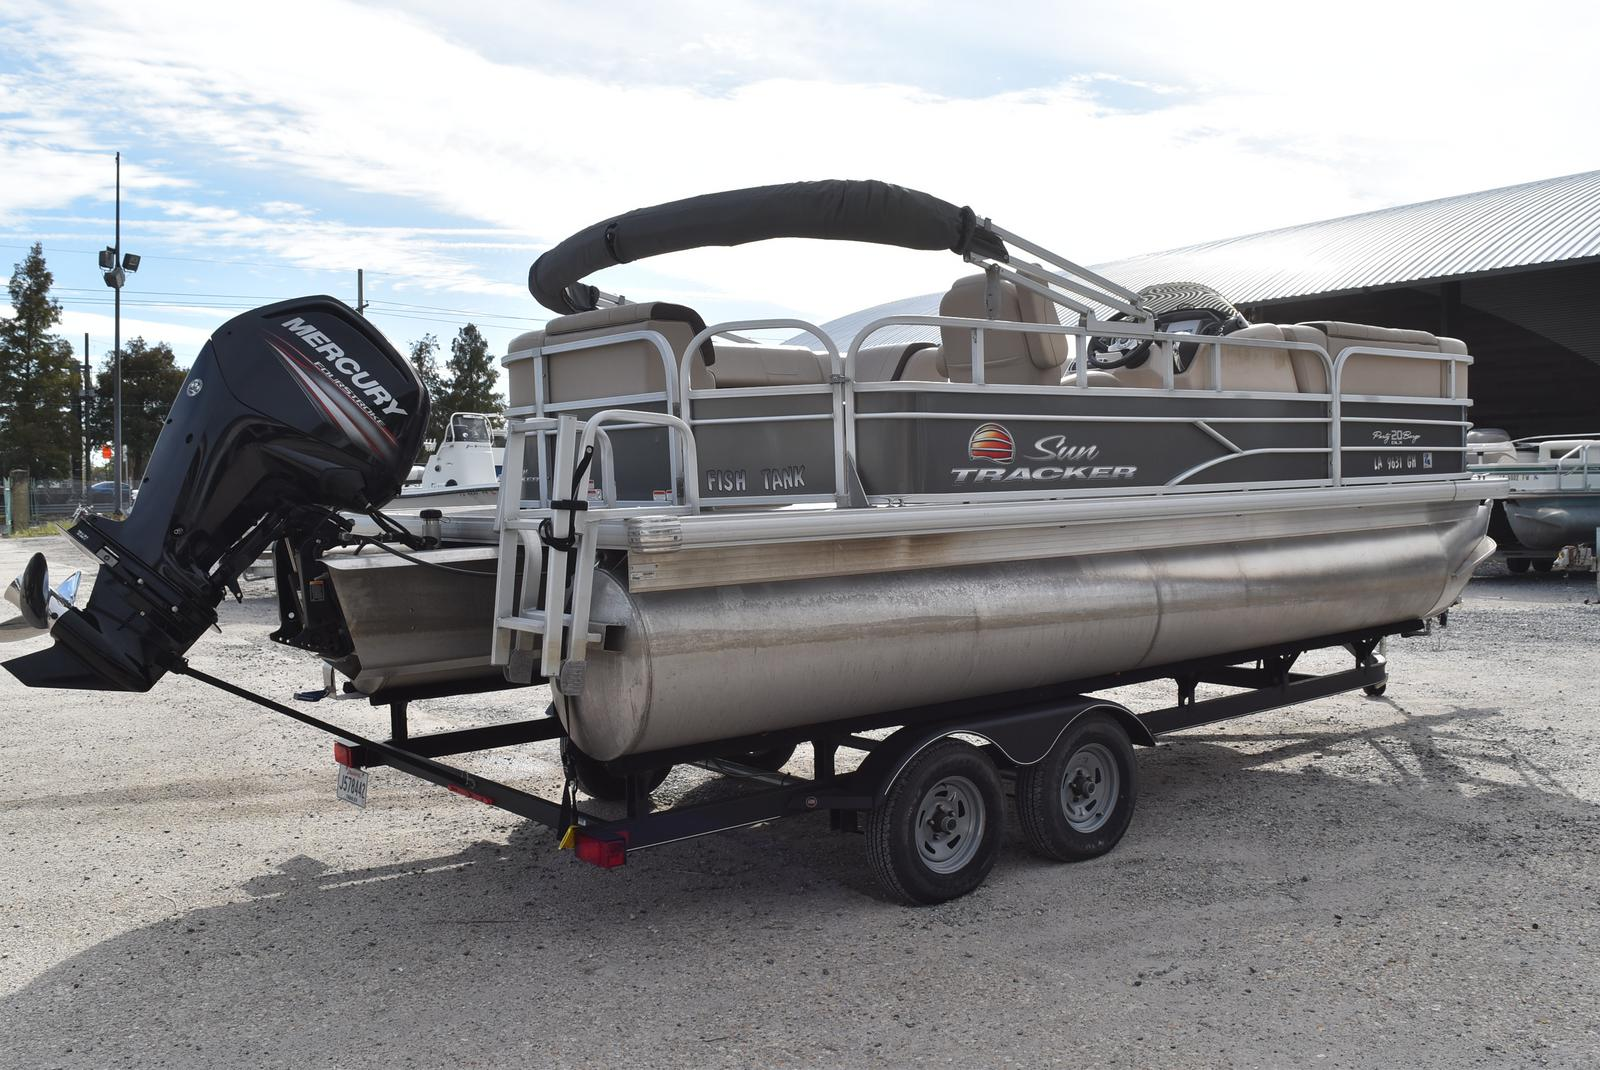 2018 Sun Tracker boat for sale, model of the boat is Party Barge 20 DLX, 90CT & Image # 2 of 14